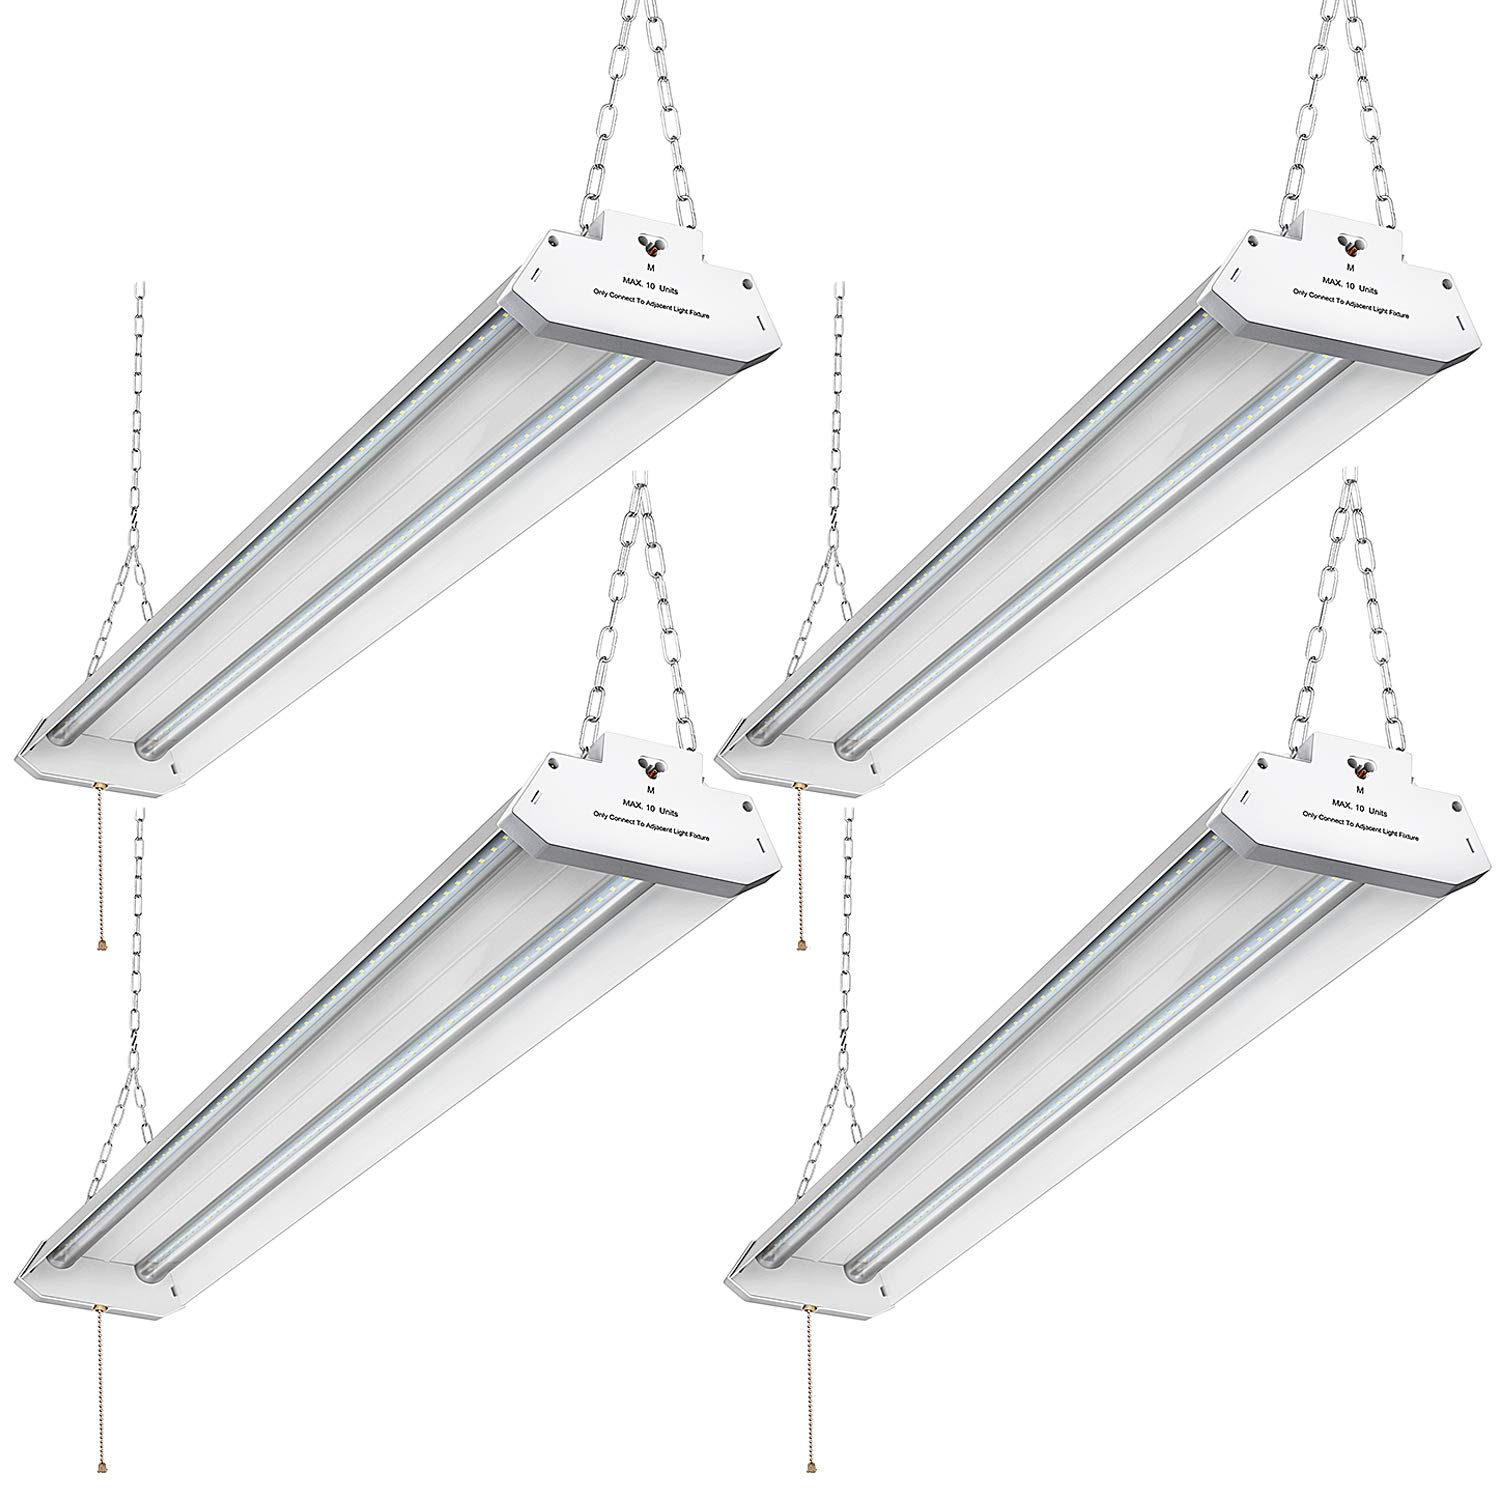 Utility Linkable LED Shop Light 4FT, Aluminum Housing, 42W (350W Equivalent) 4500LM 5000K Daylight White, with Pull Chain (ON/Off) Linear Worklight Fixture with Plug cETLus Listed, 4-Pack